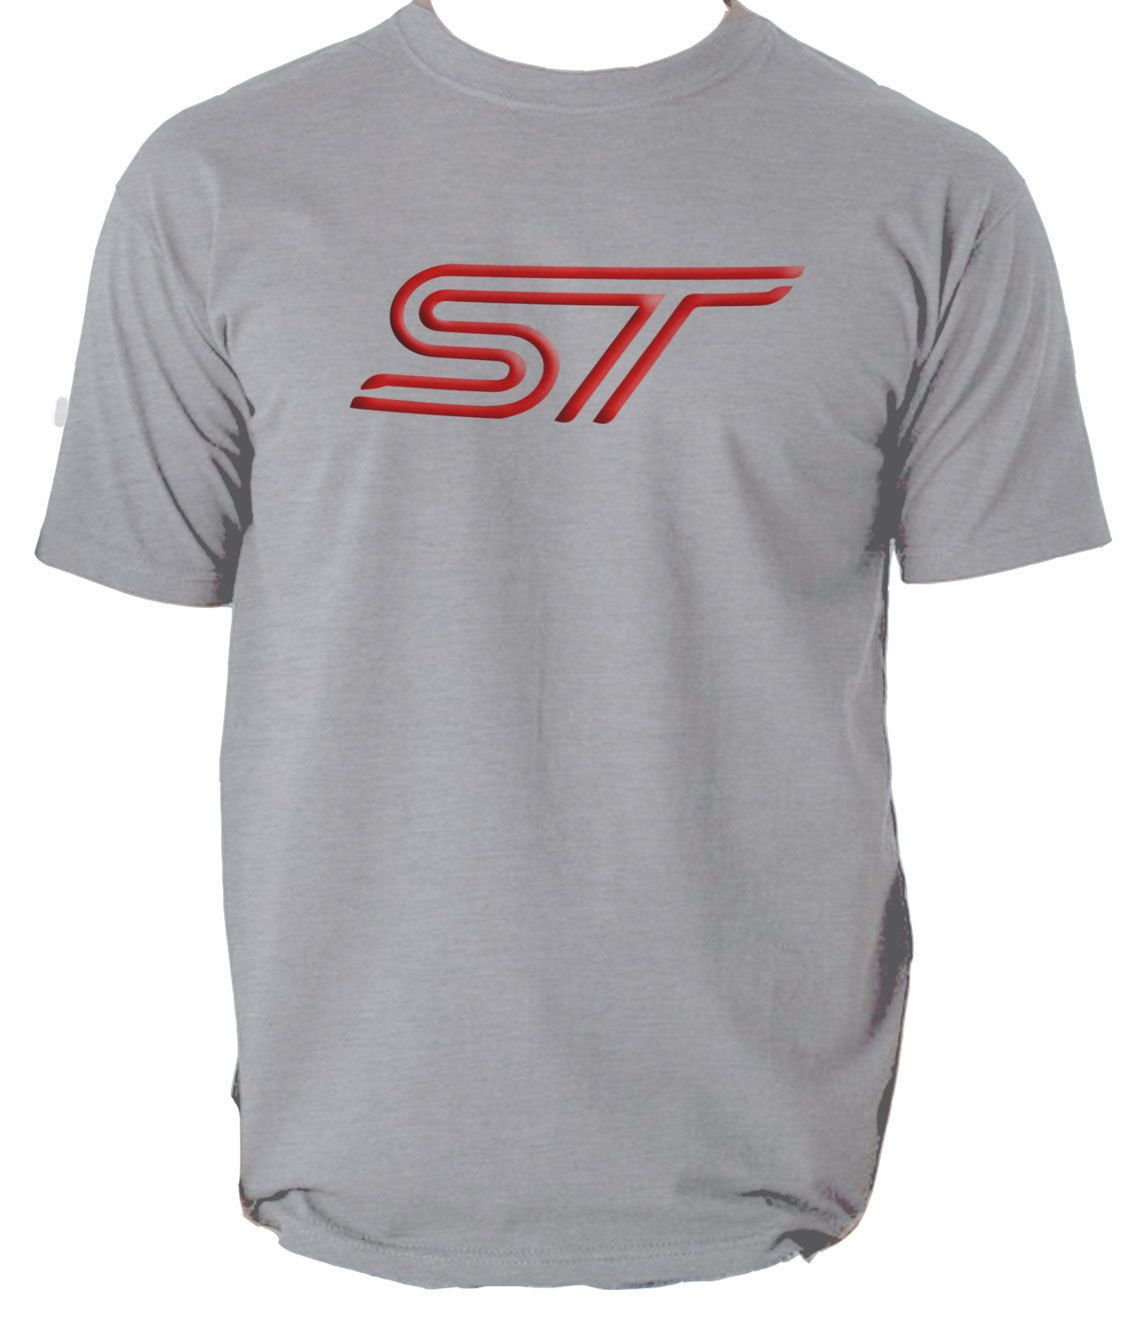 8 99 Gbp Ford Focus St T Shirt Christmas Gift 100 Premium Cotton Six Colours Ebay Fashion Ford Focus St Ford Focus Ford